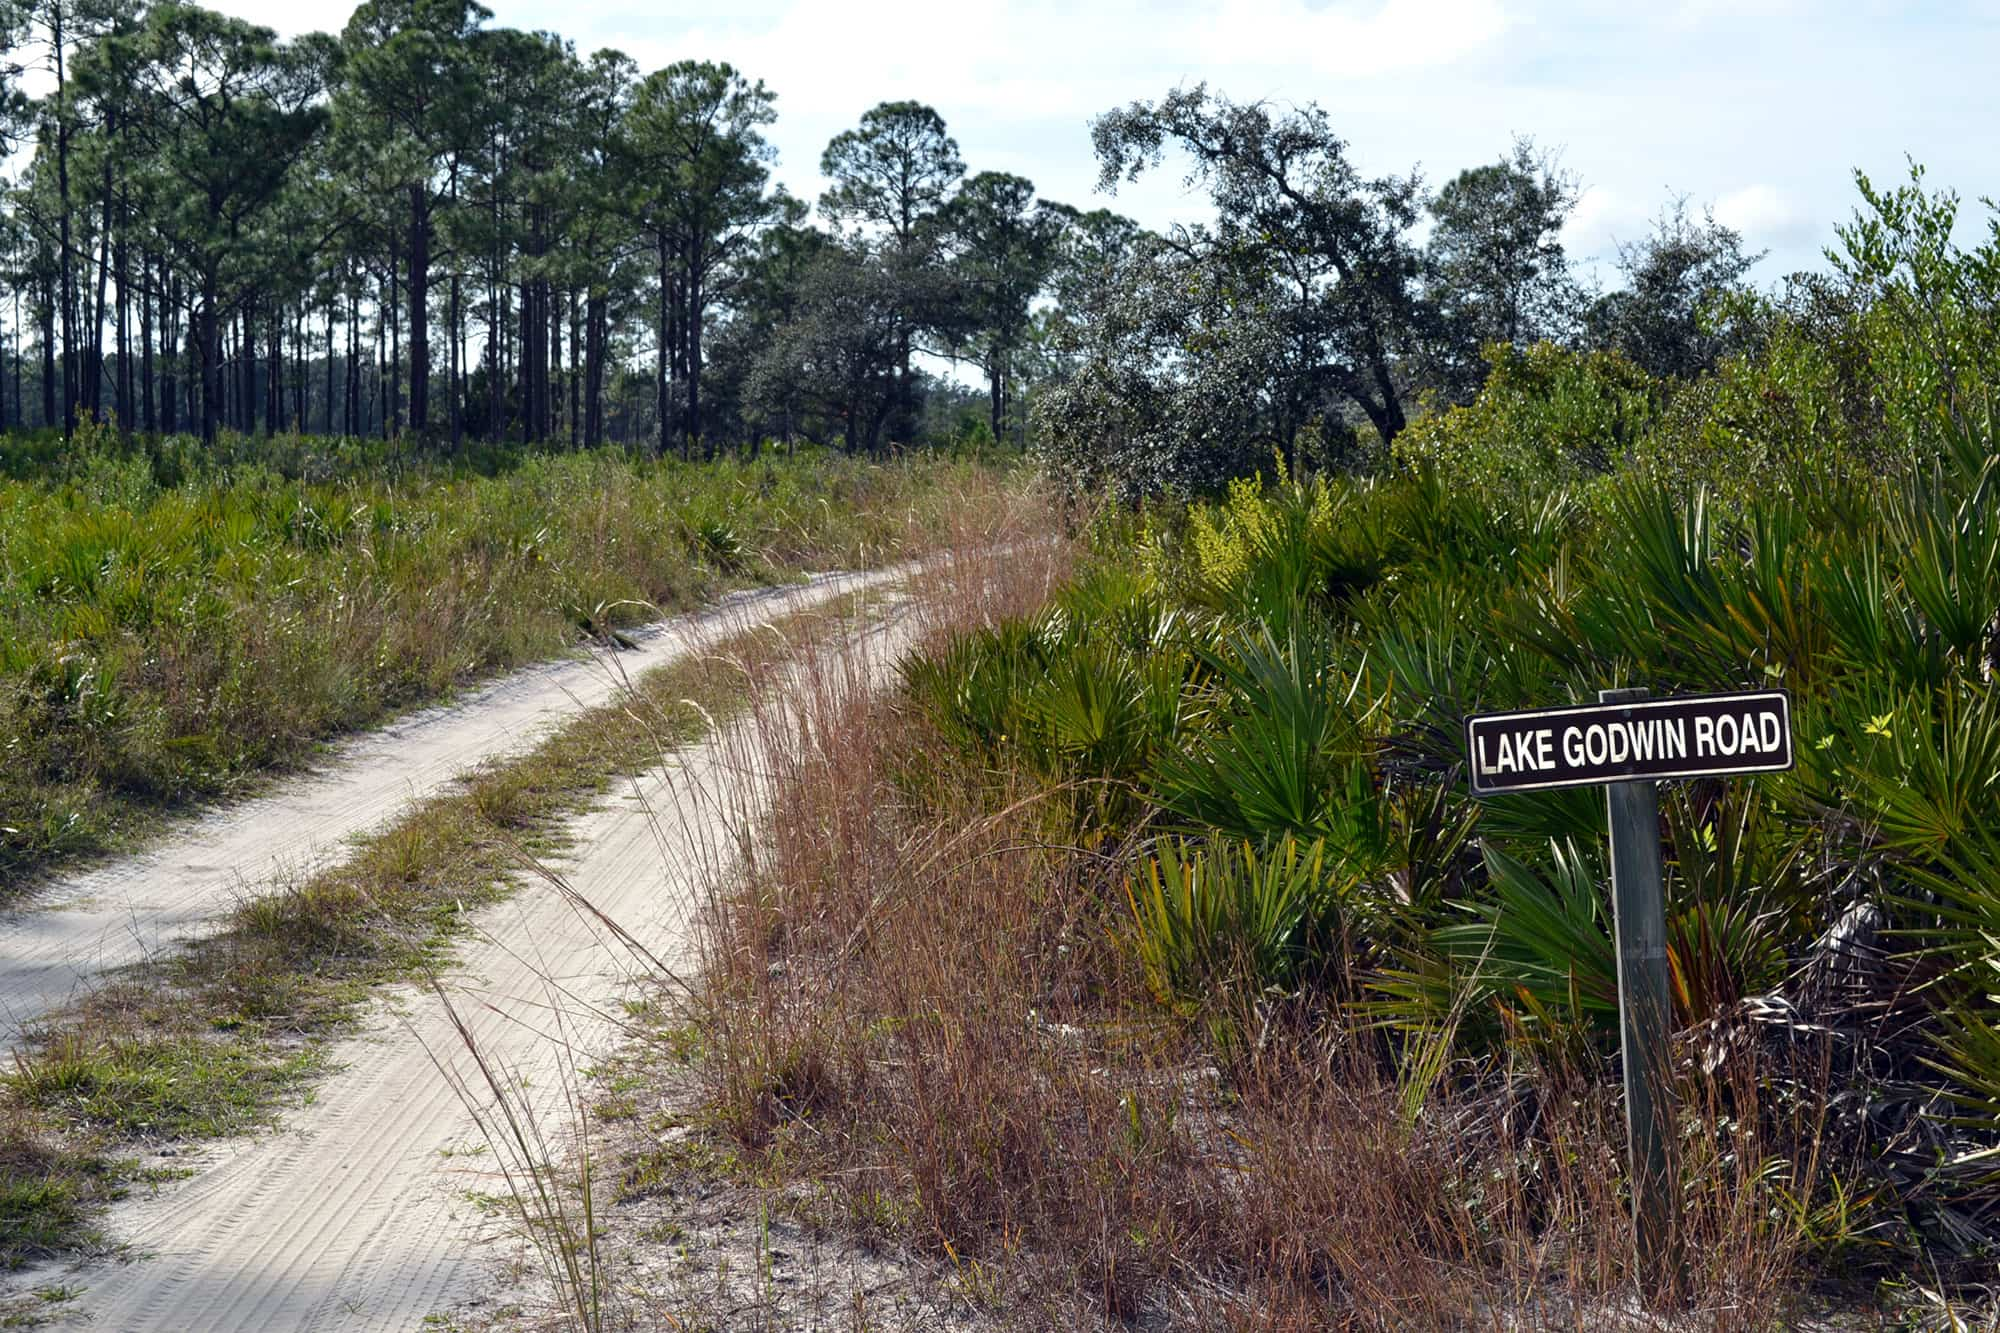 Sandy access road at Arbuckle Wildlife Management Area in Frostproof, FL